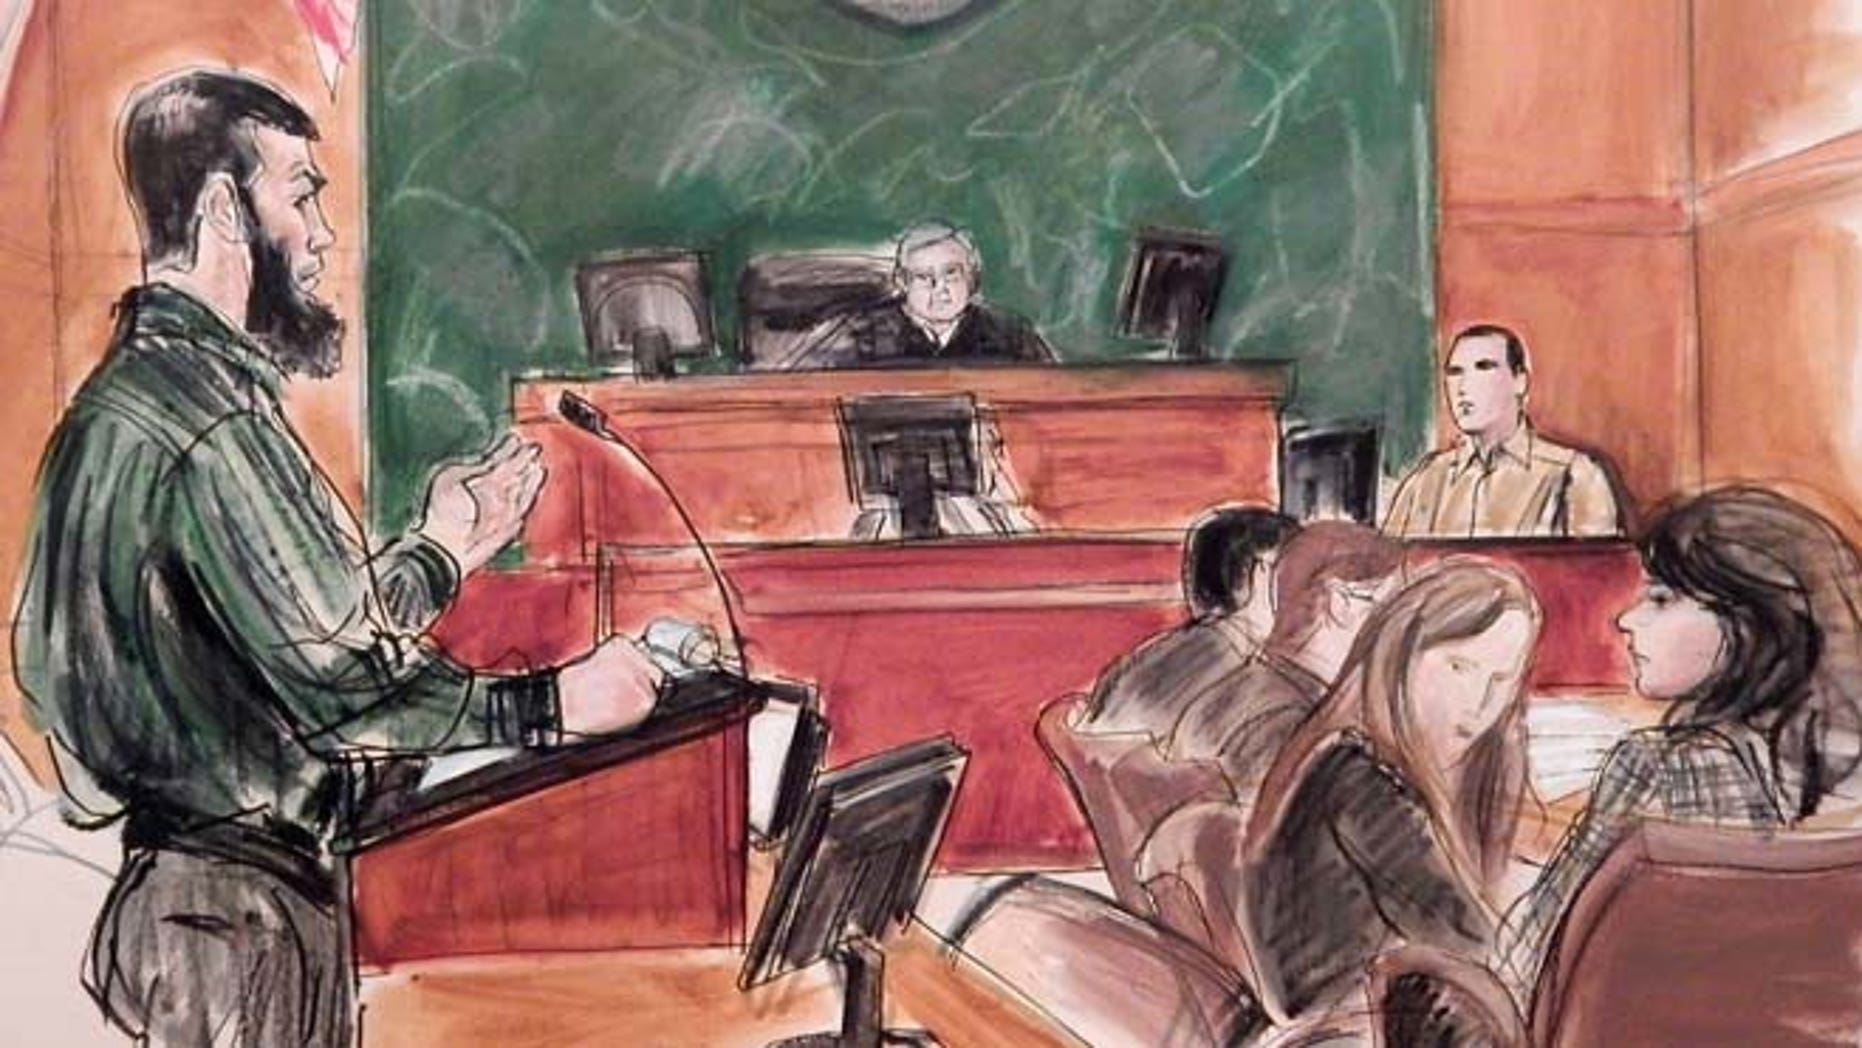 Feb. 18, 2015: In this courtroom file sketch, Abid Naseer, left, accused of being an Al Qaeda operative, questions Najibulla Zazi, center right, a cooperating government witness, as Assistant U.S. Attorney Zainab Ahmad, far right, observes Naseer, and Judge Raymond Dearie listens from the bench in federal court in the Brooklyn borough of New York, where Naseer is acting as as his own attorney. (AP)